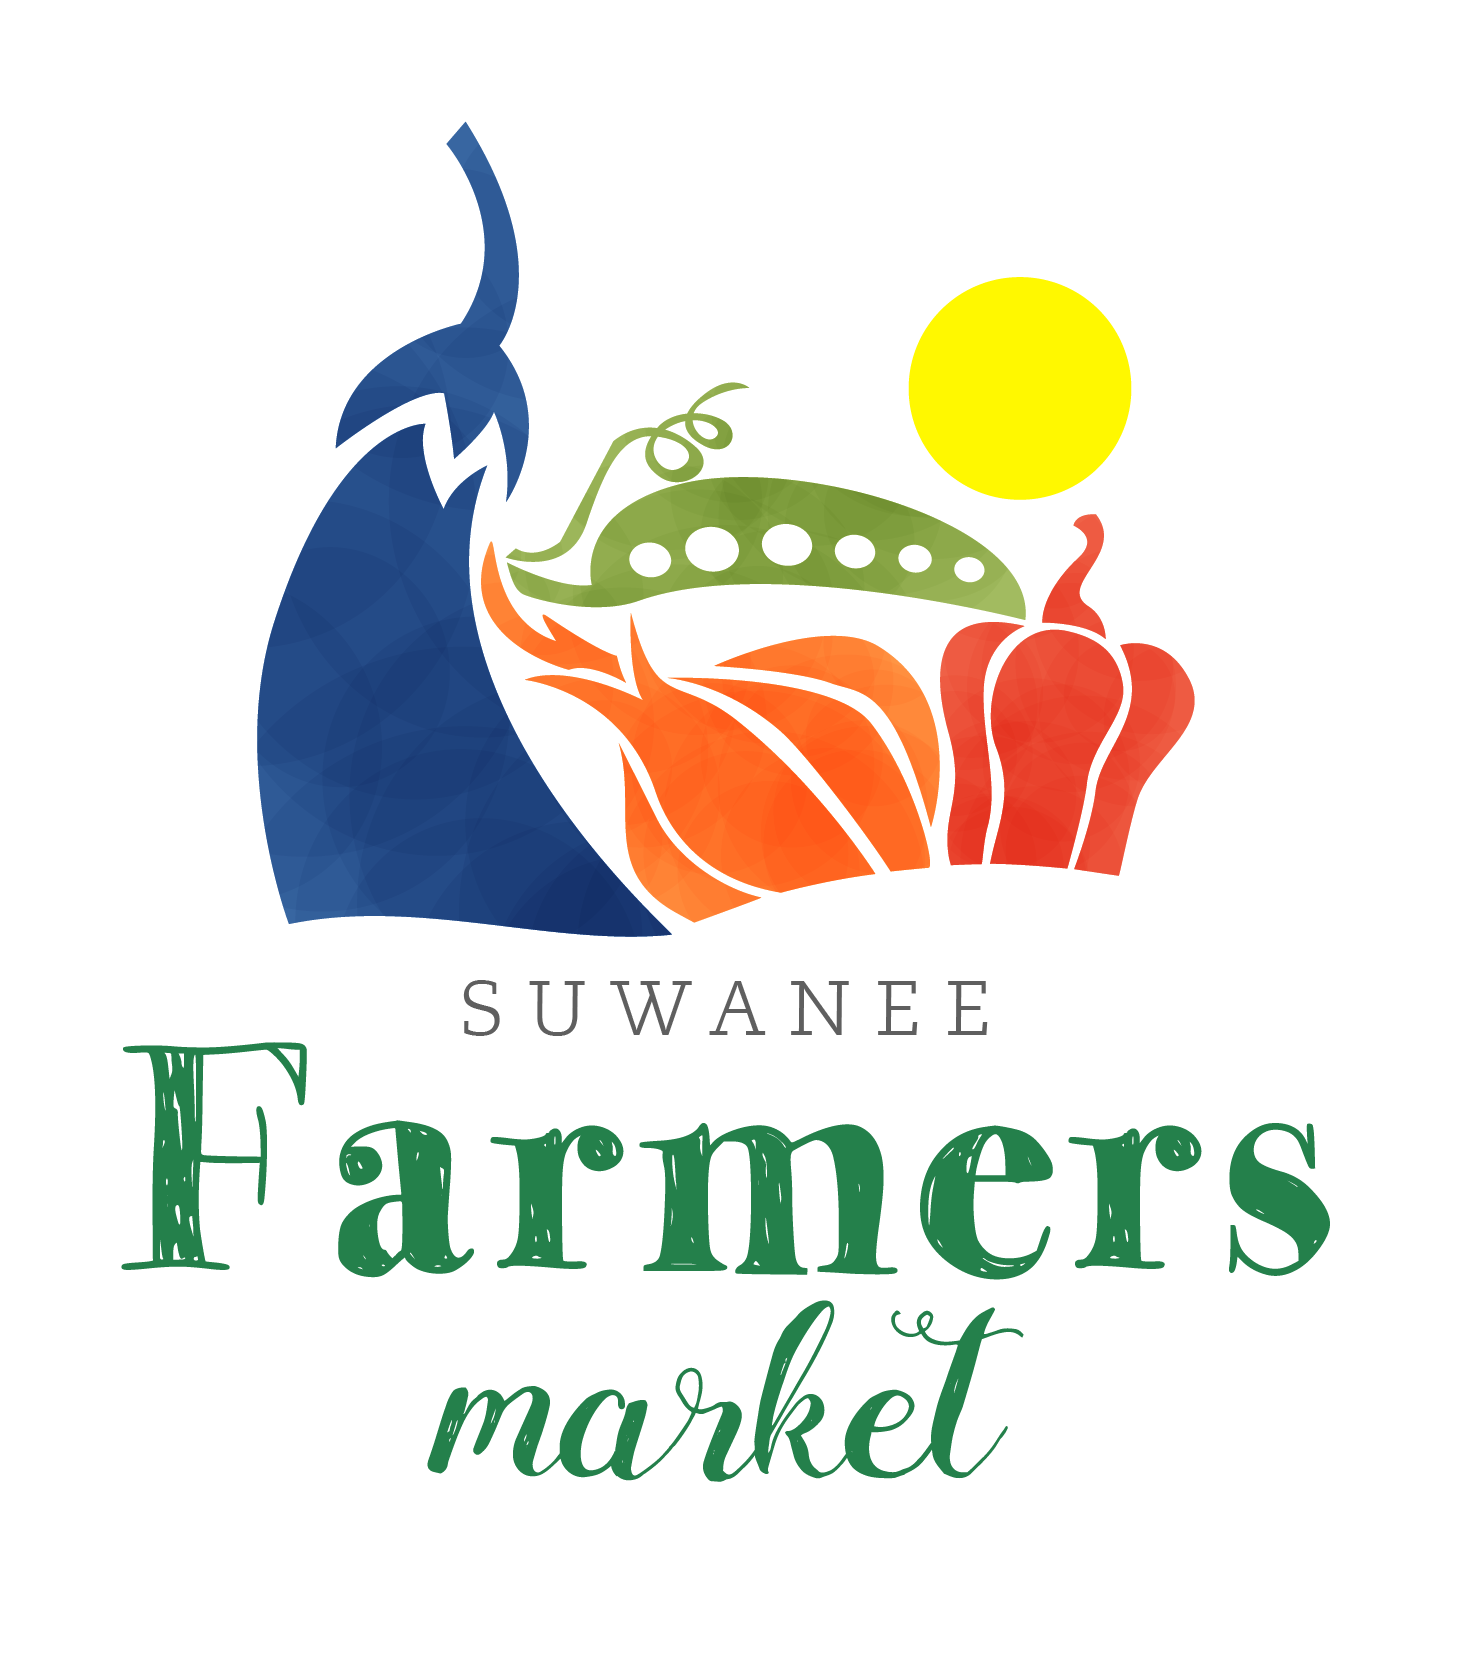 - Suwanee Farmer's MarketMay 11 – September 28, 2019(NO Farmers Market on Sept. 21)Saturdays, 8 am-noonOctober 2019 – April 2020Second Saturday of the month, 9-11 am330 Town Center Ave.Suwanee, GA 30024Contact: Amy Dohertyadoherty@suwanee.com